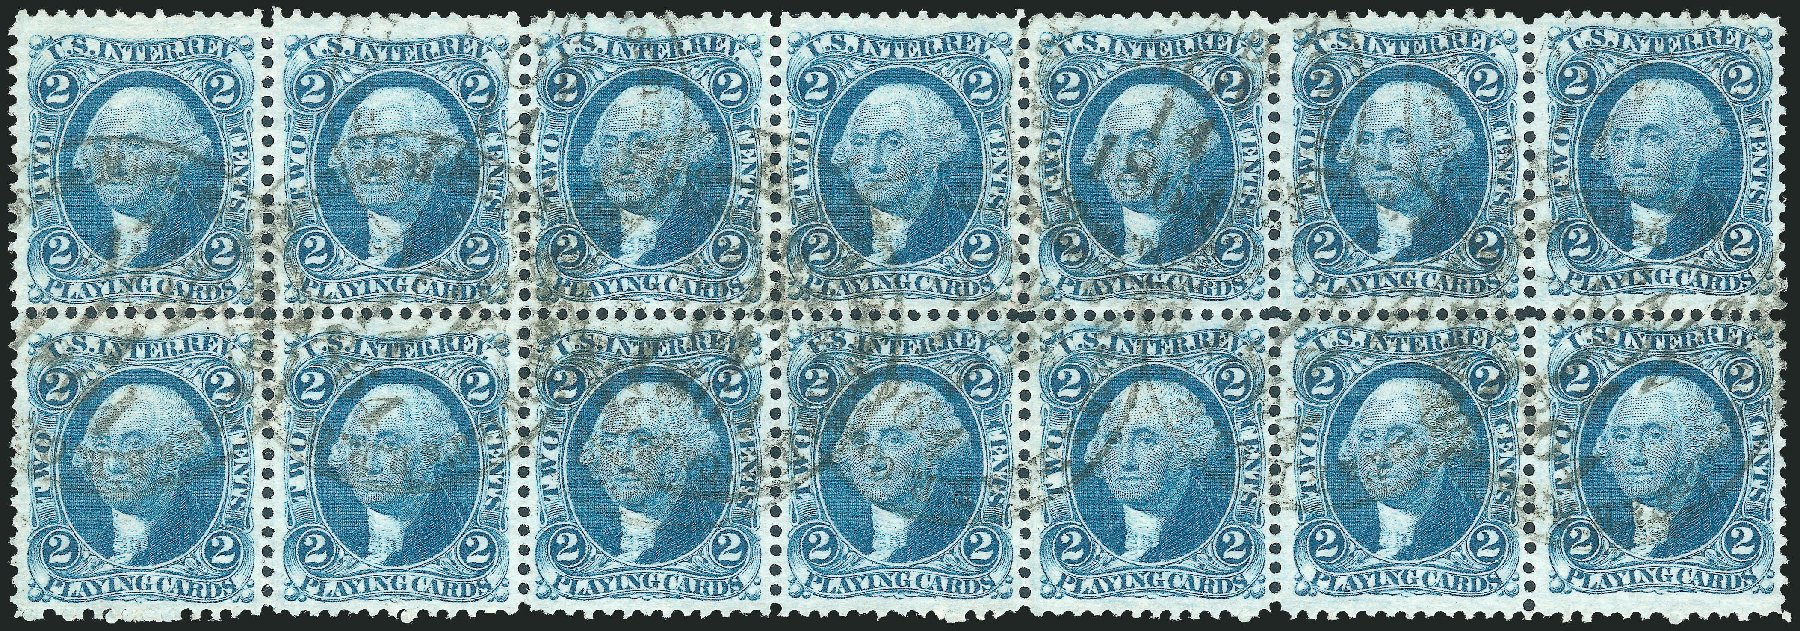 Price of US Stamps Scott Catalog #R11 - 2c 1862 Revenue Playing Cards. Robert Siegel Auction Galleries, Oct 2012, Sale 1031, Lot 1026